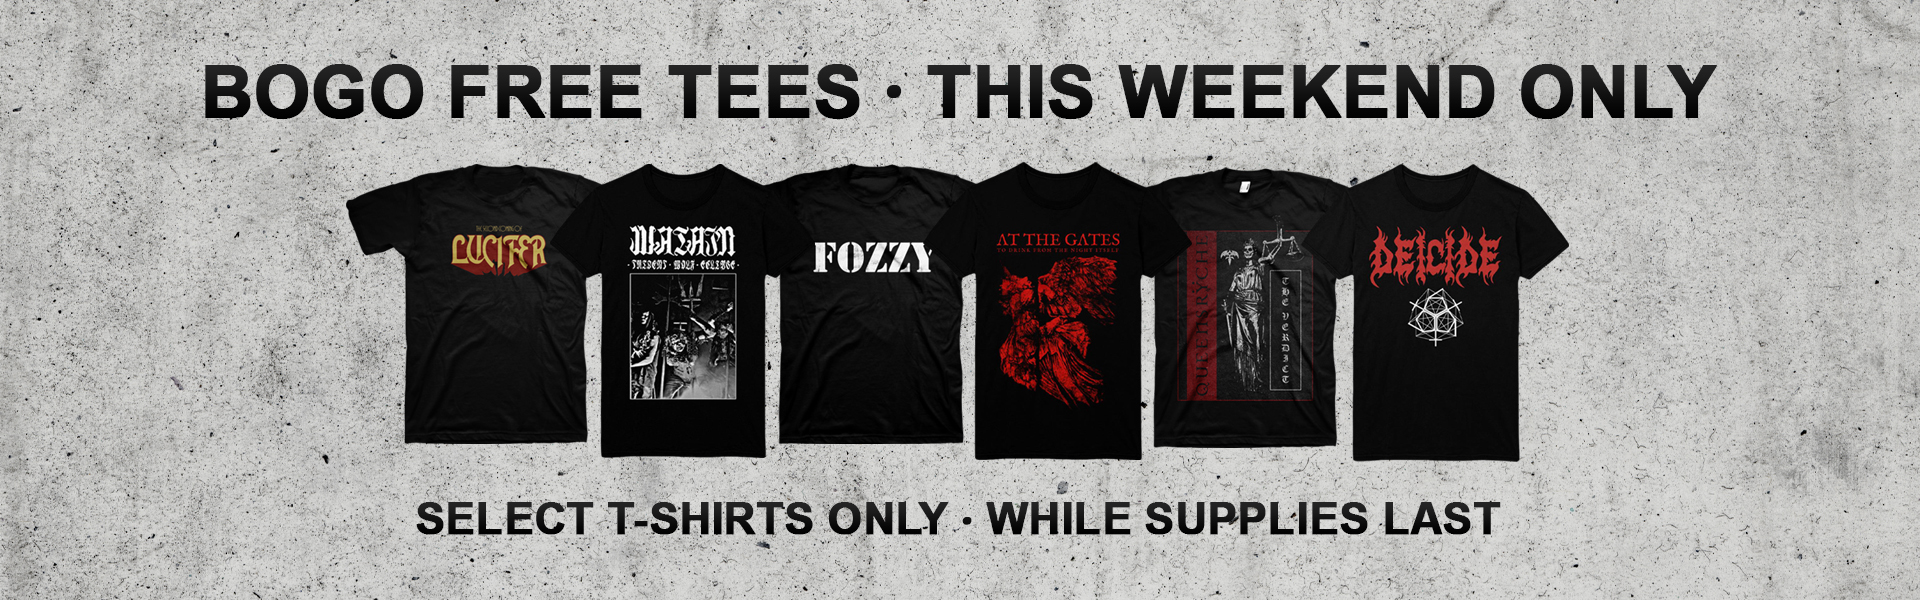 Buy One, Get On Free T-Shirts!